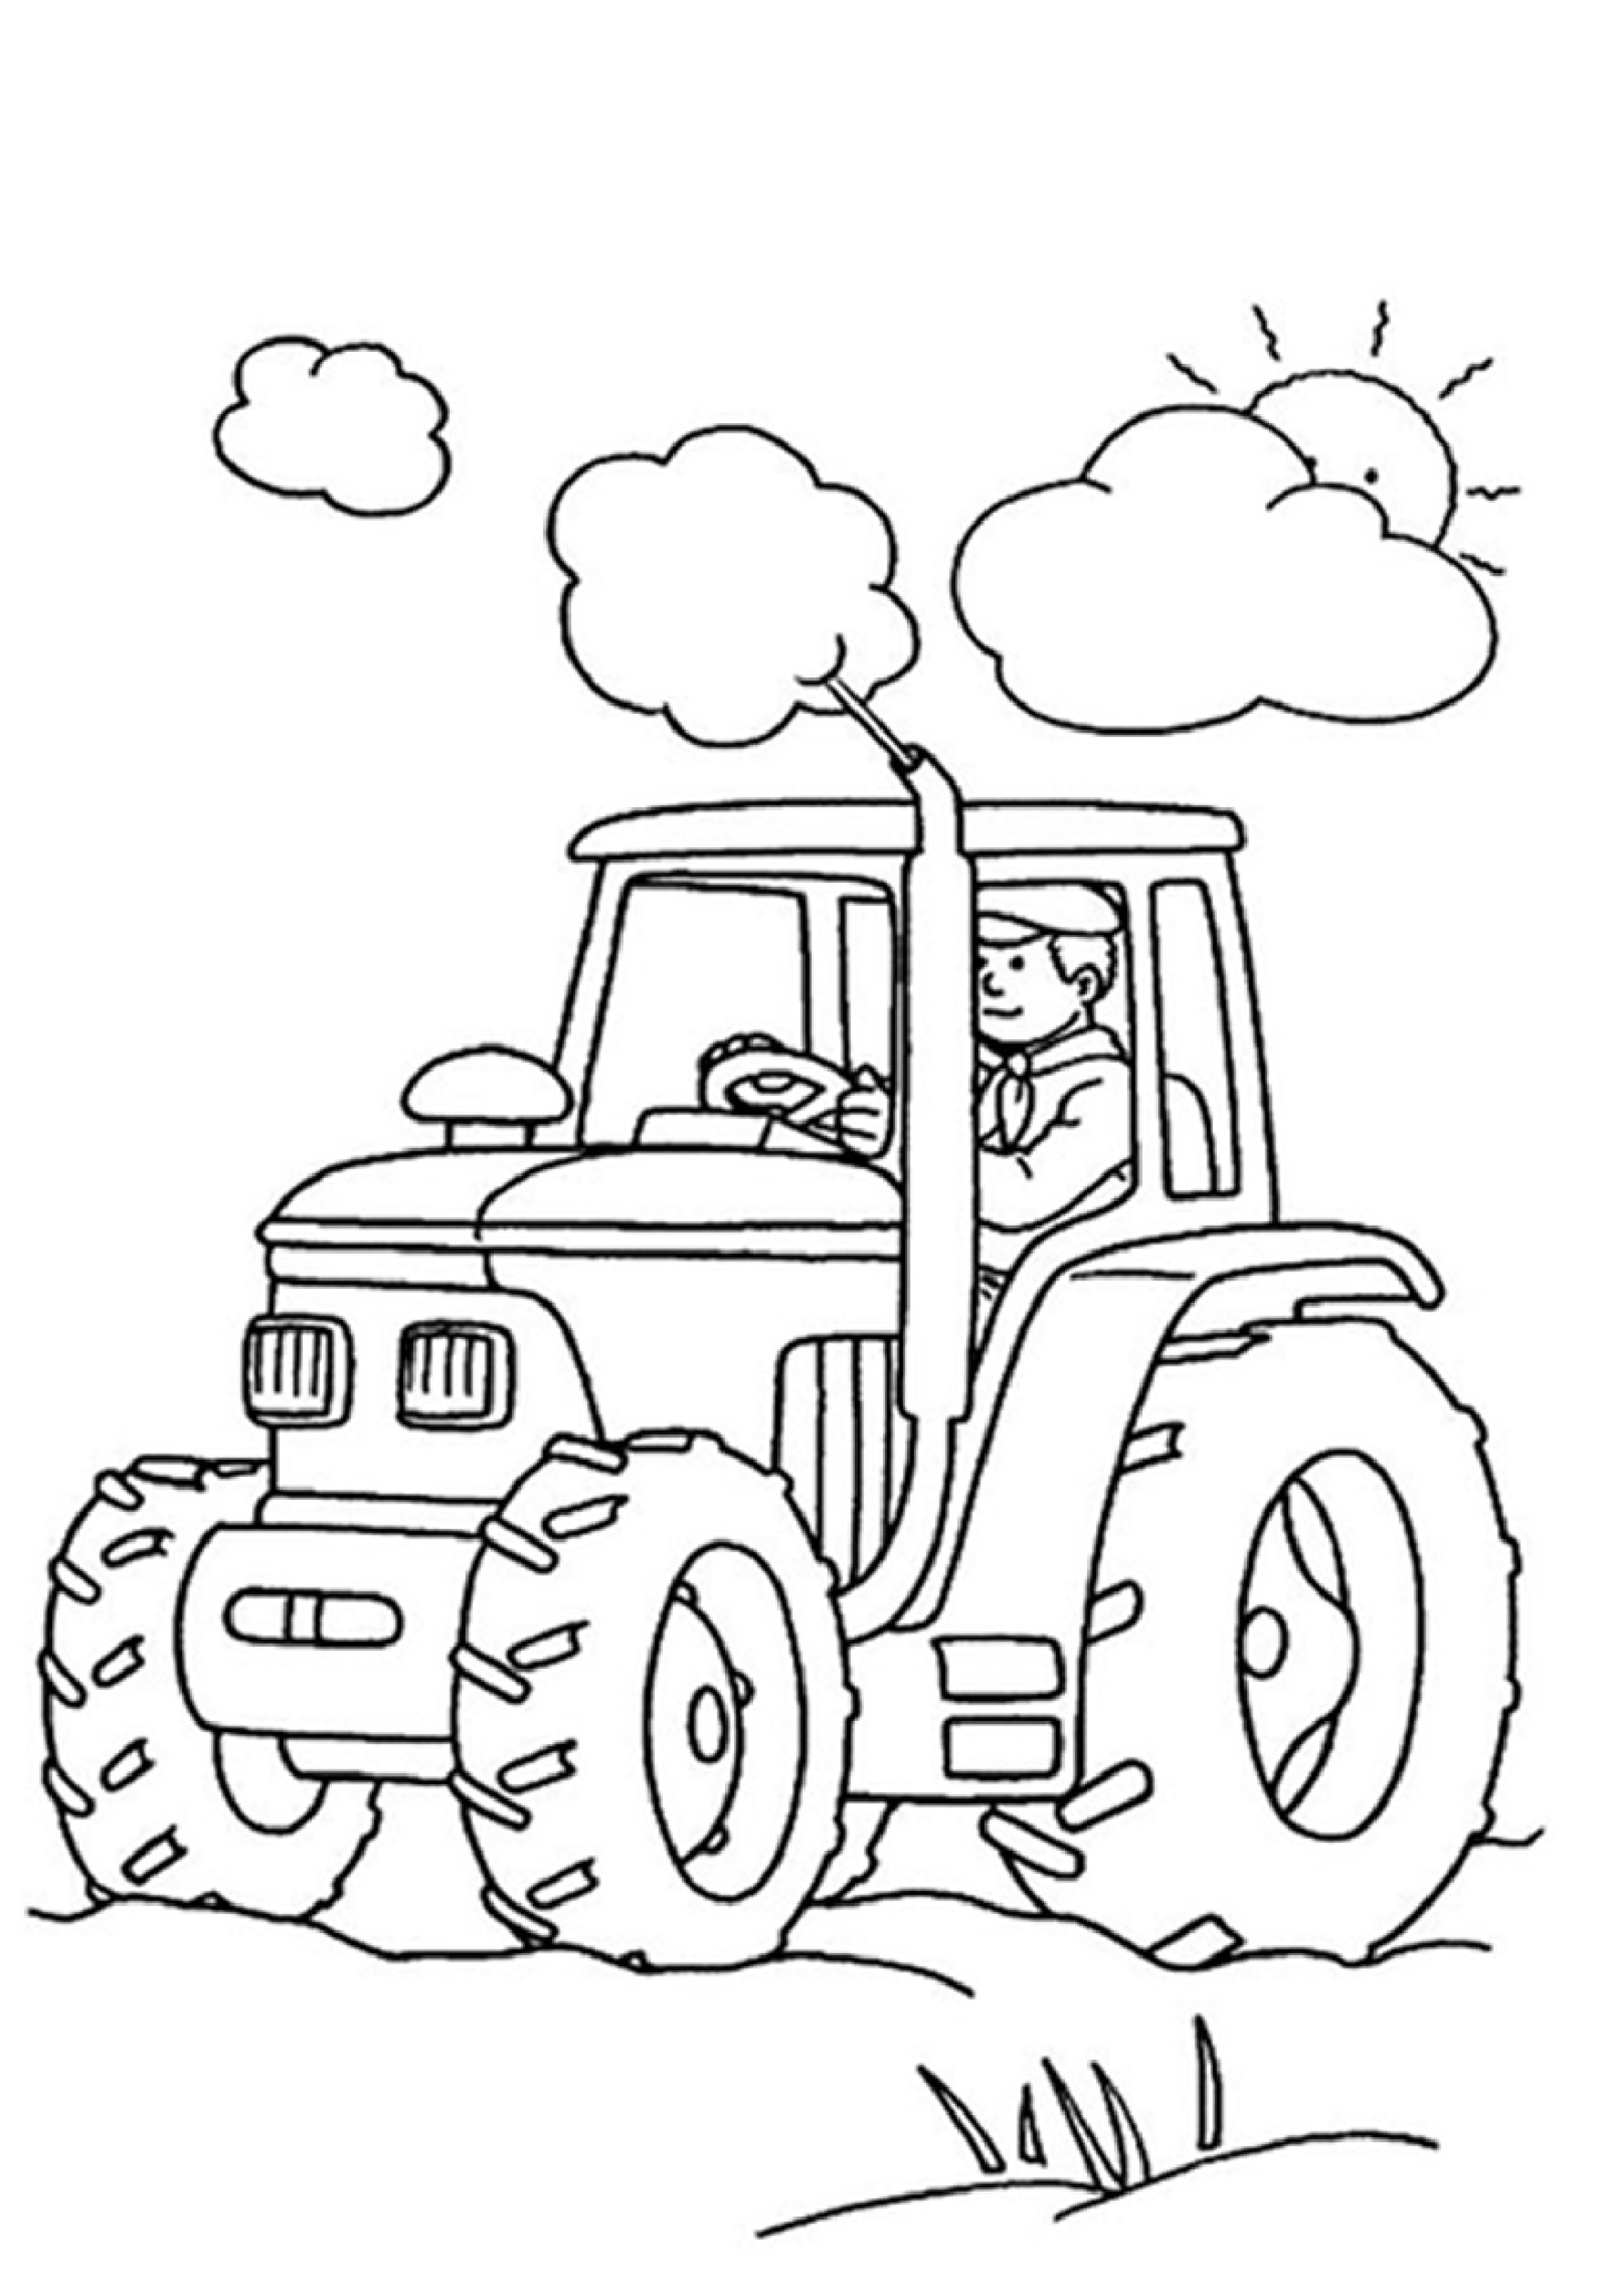 Free Coloring Pages Pdf Format For Toddlers